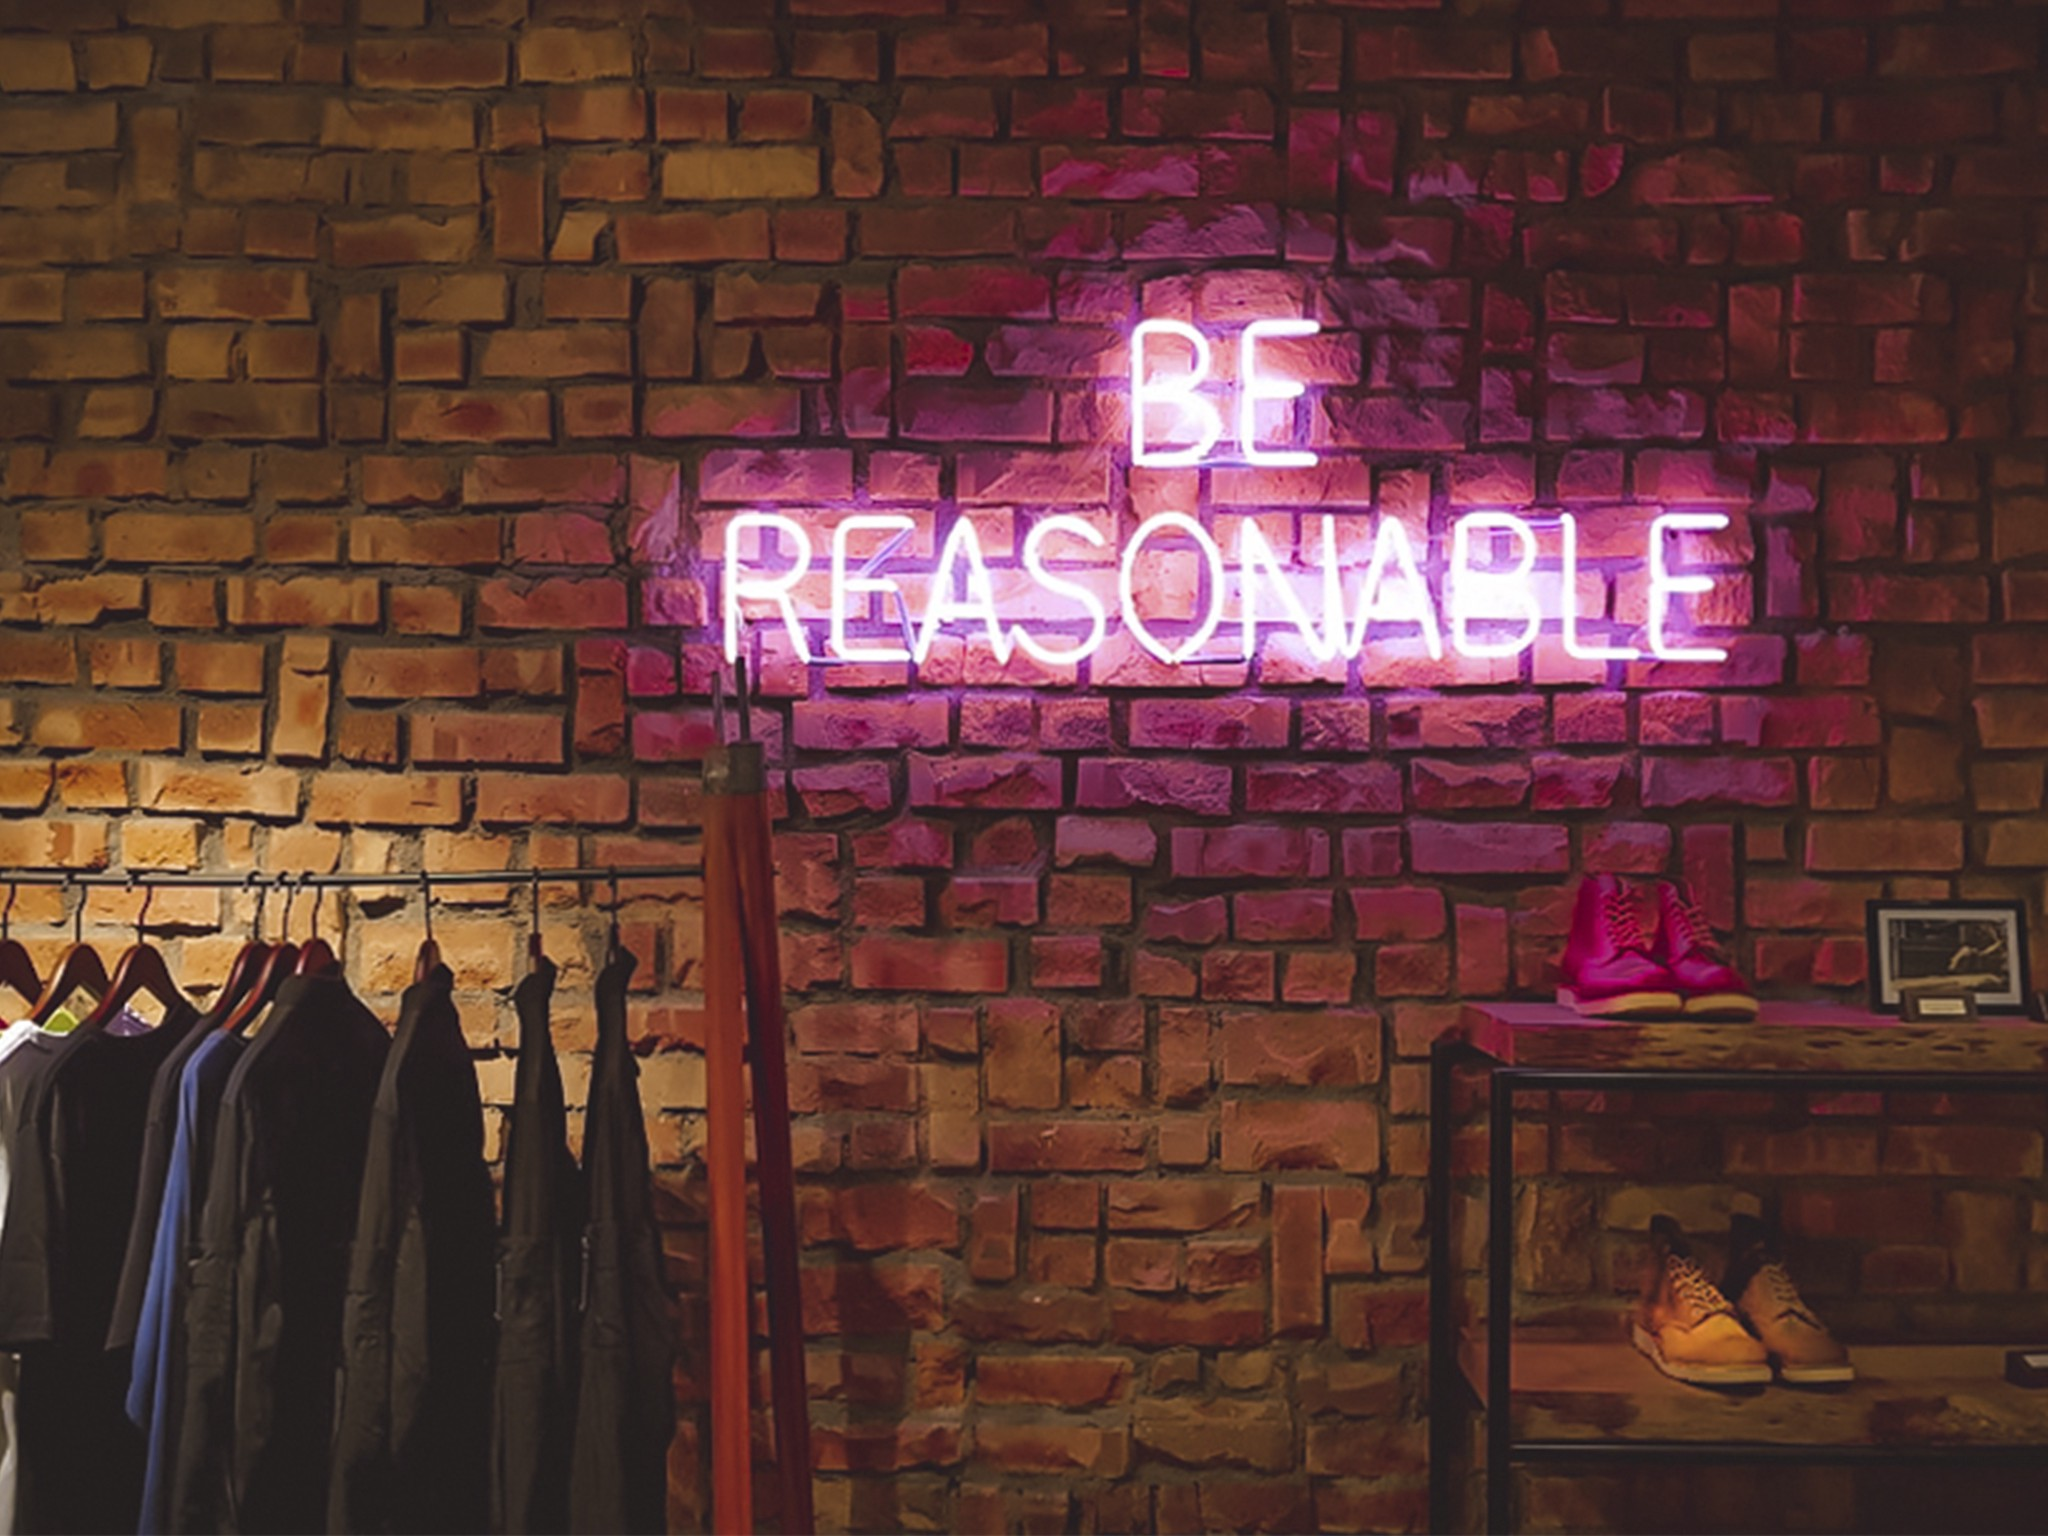 Be reasonable neon sign against brick wall expressing fashion and sustainable buying habits